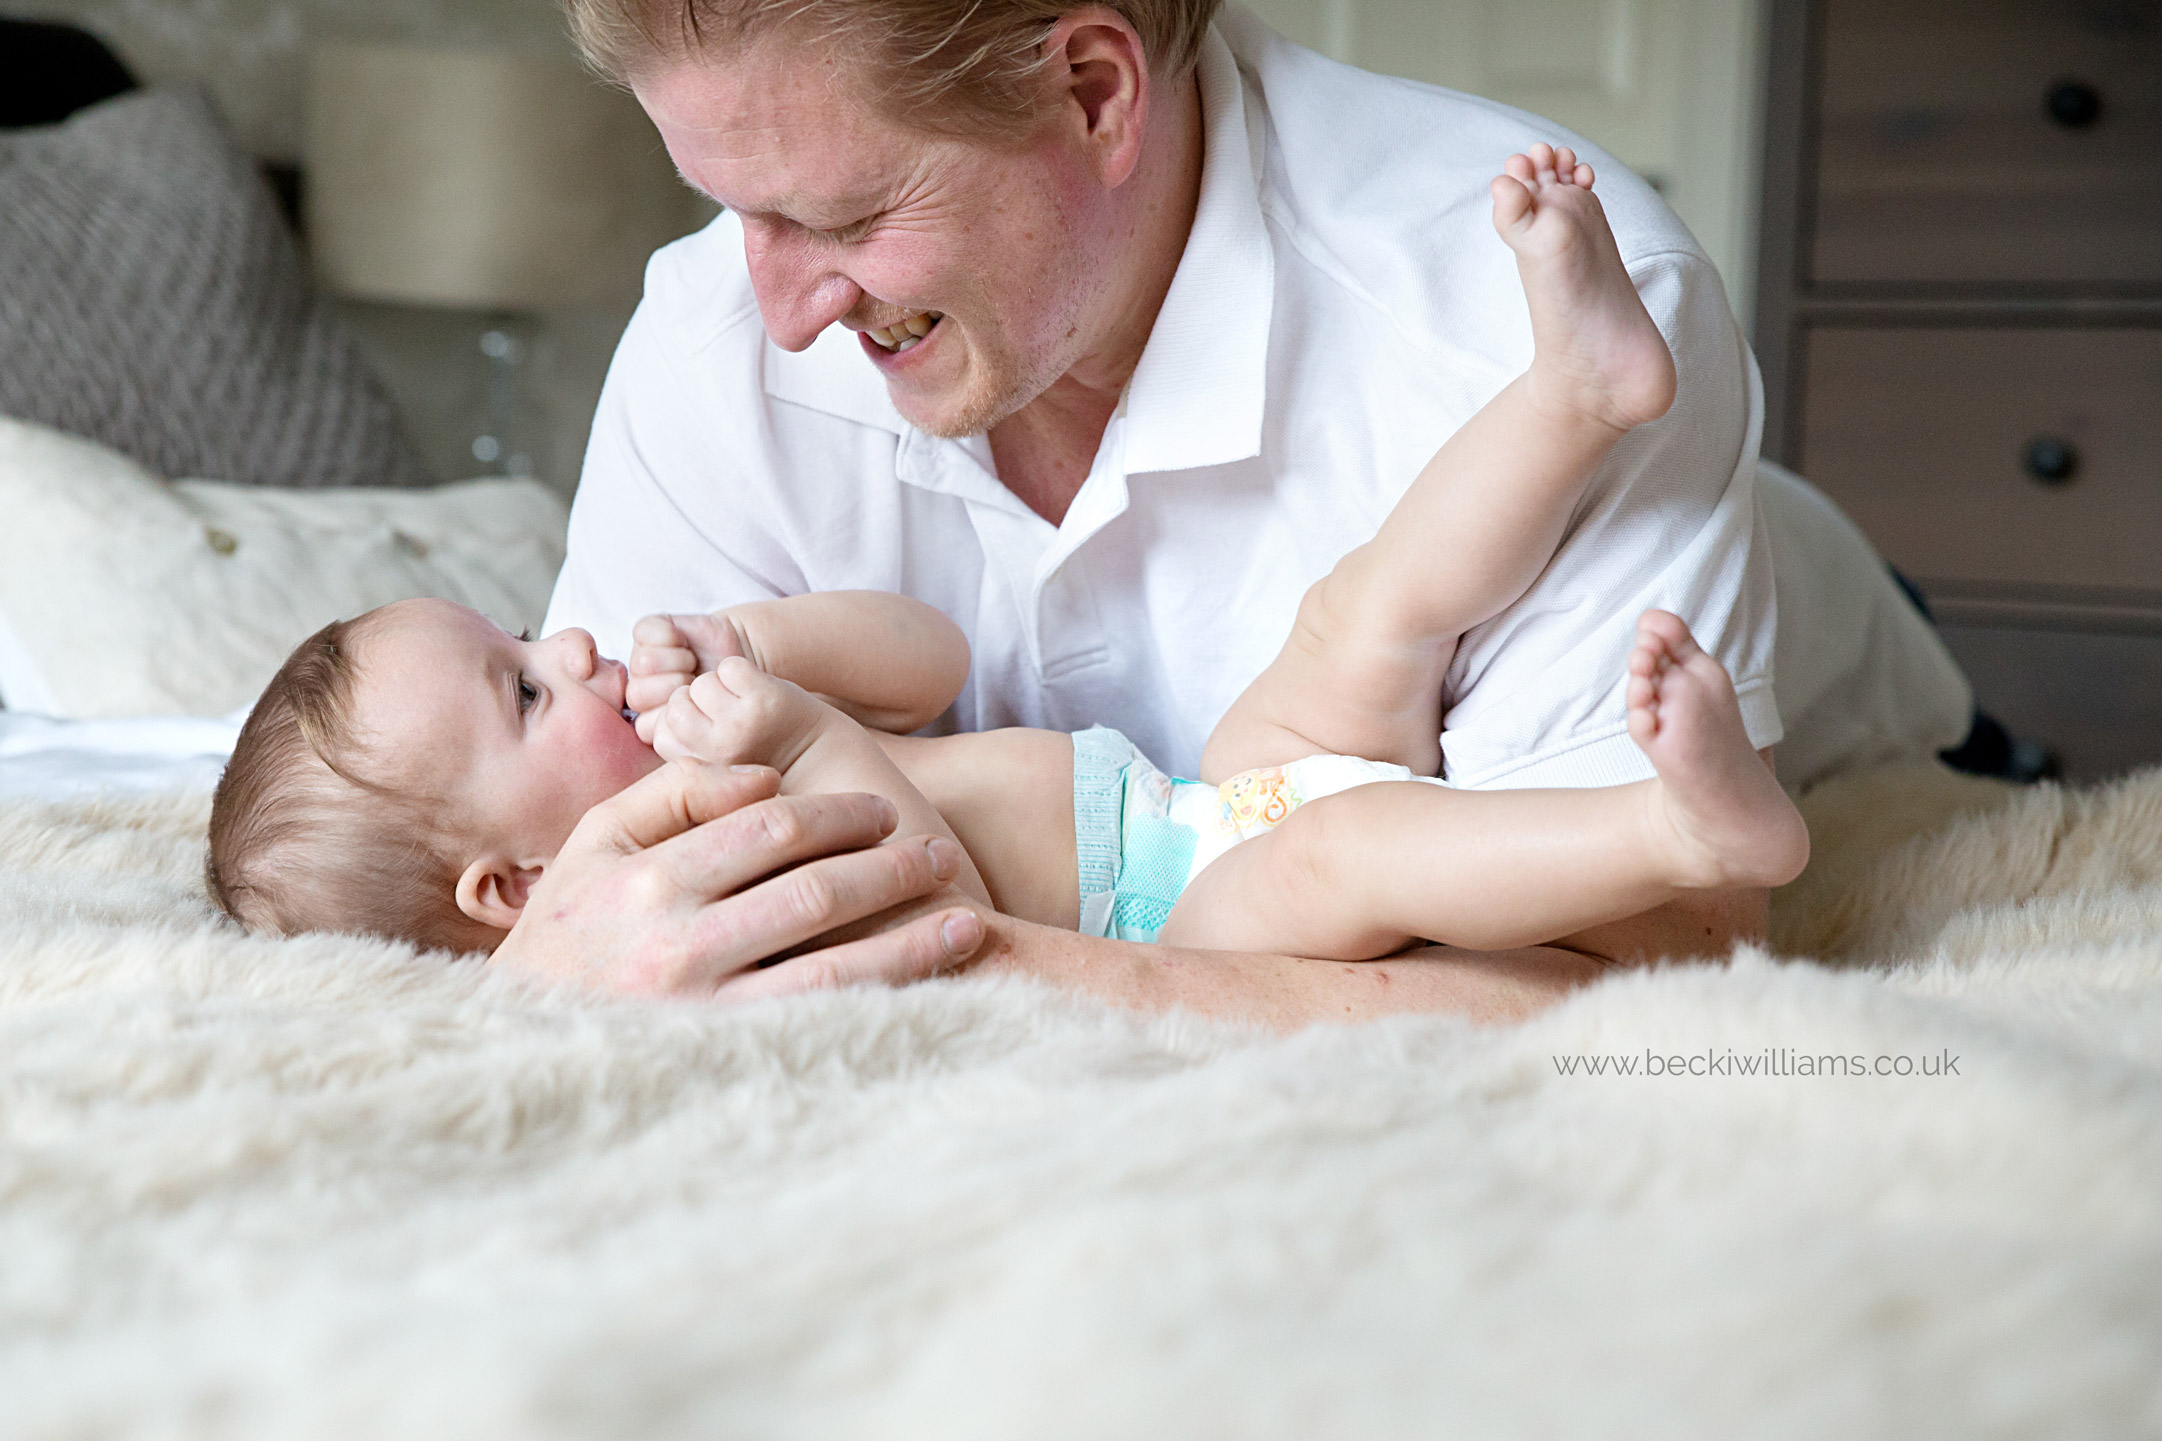 8 month old playing with dad on bed for professional photography in hitchin